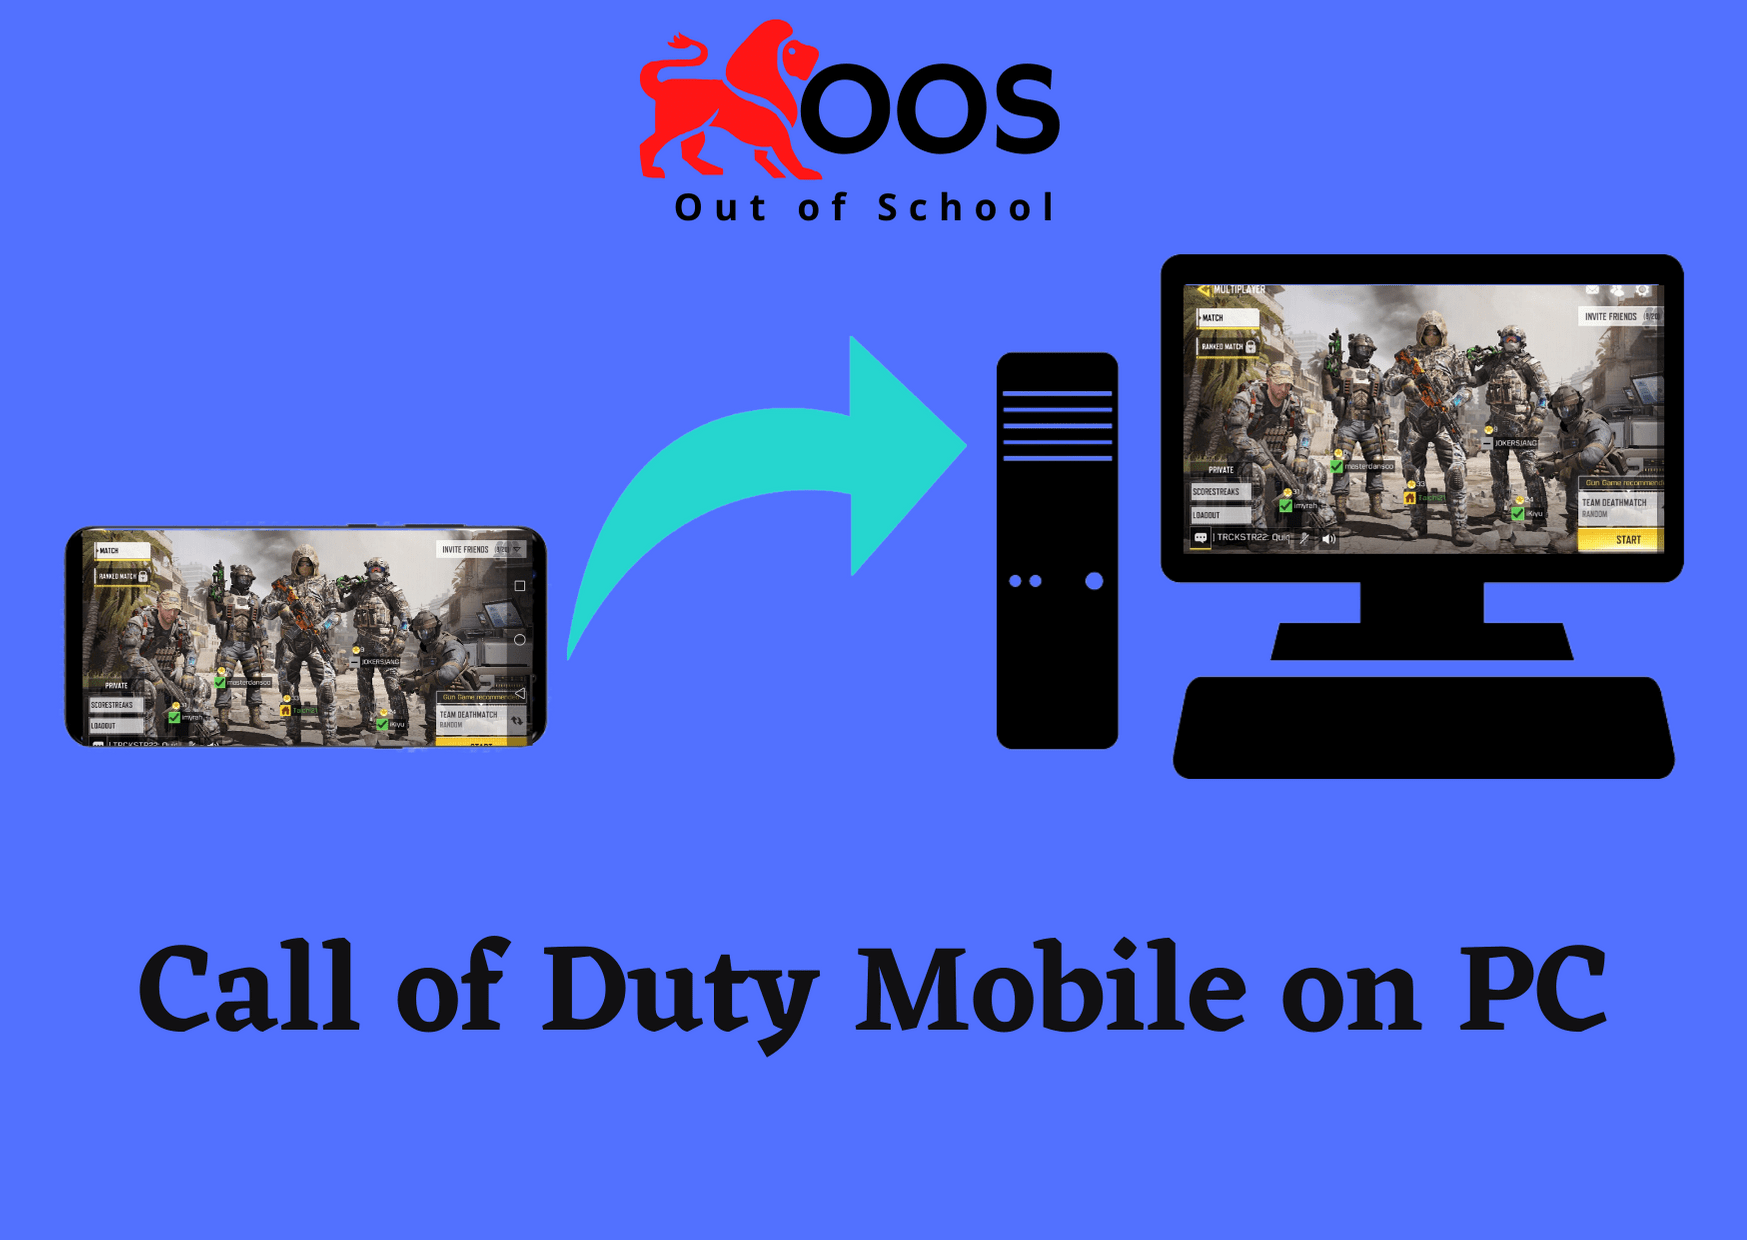 Call of duty mobile on PC